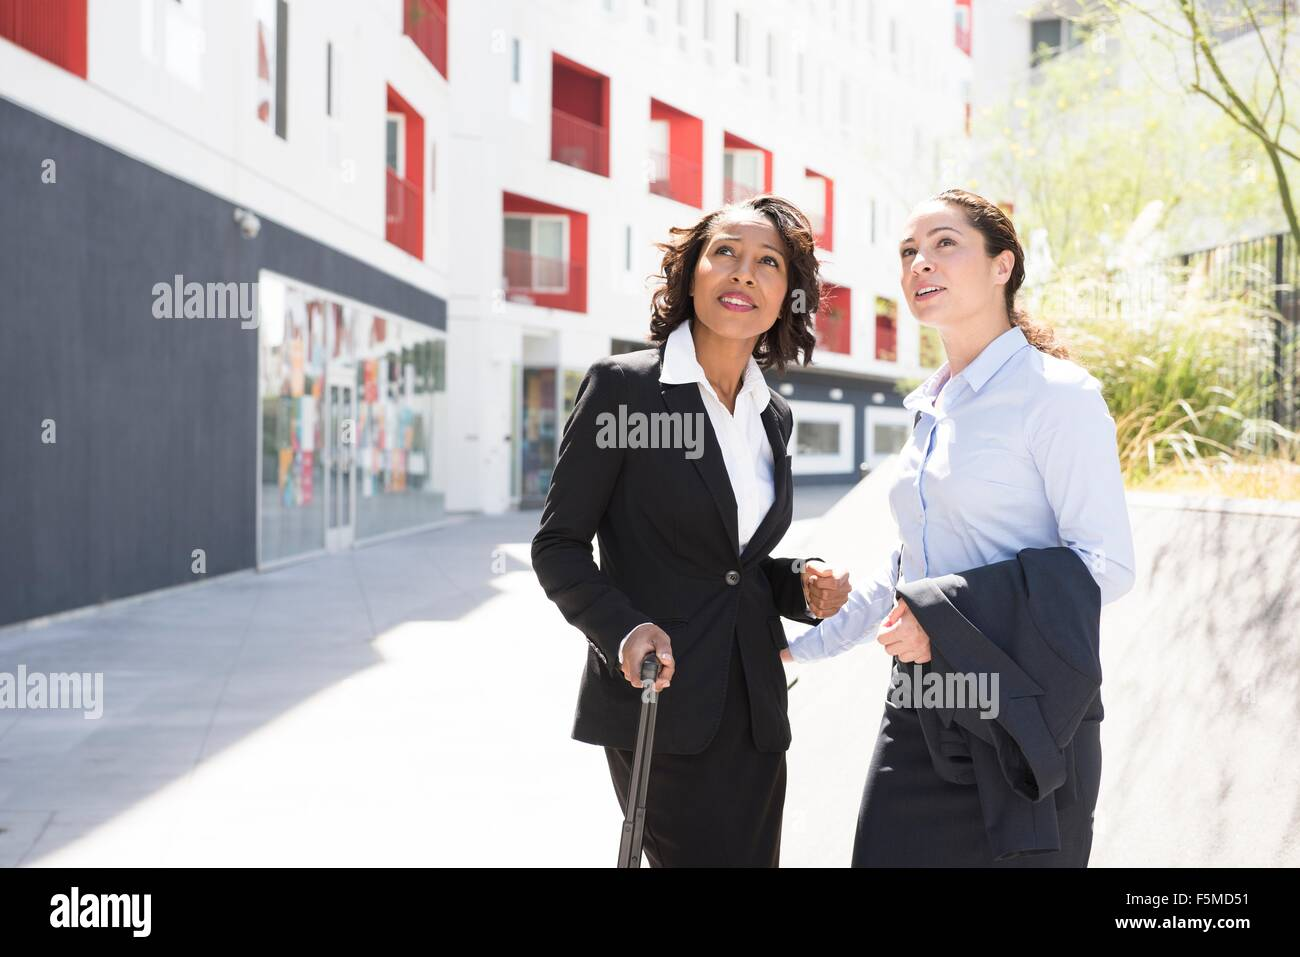 Two businesswomen standing together in street - Stock Image